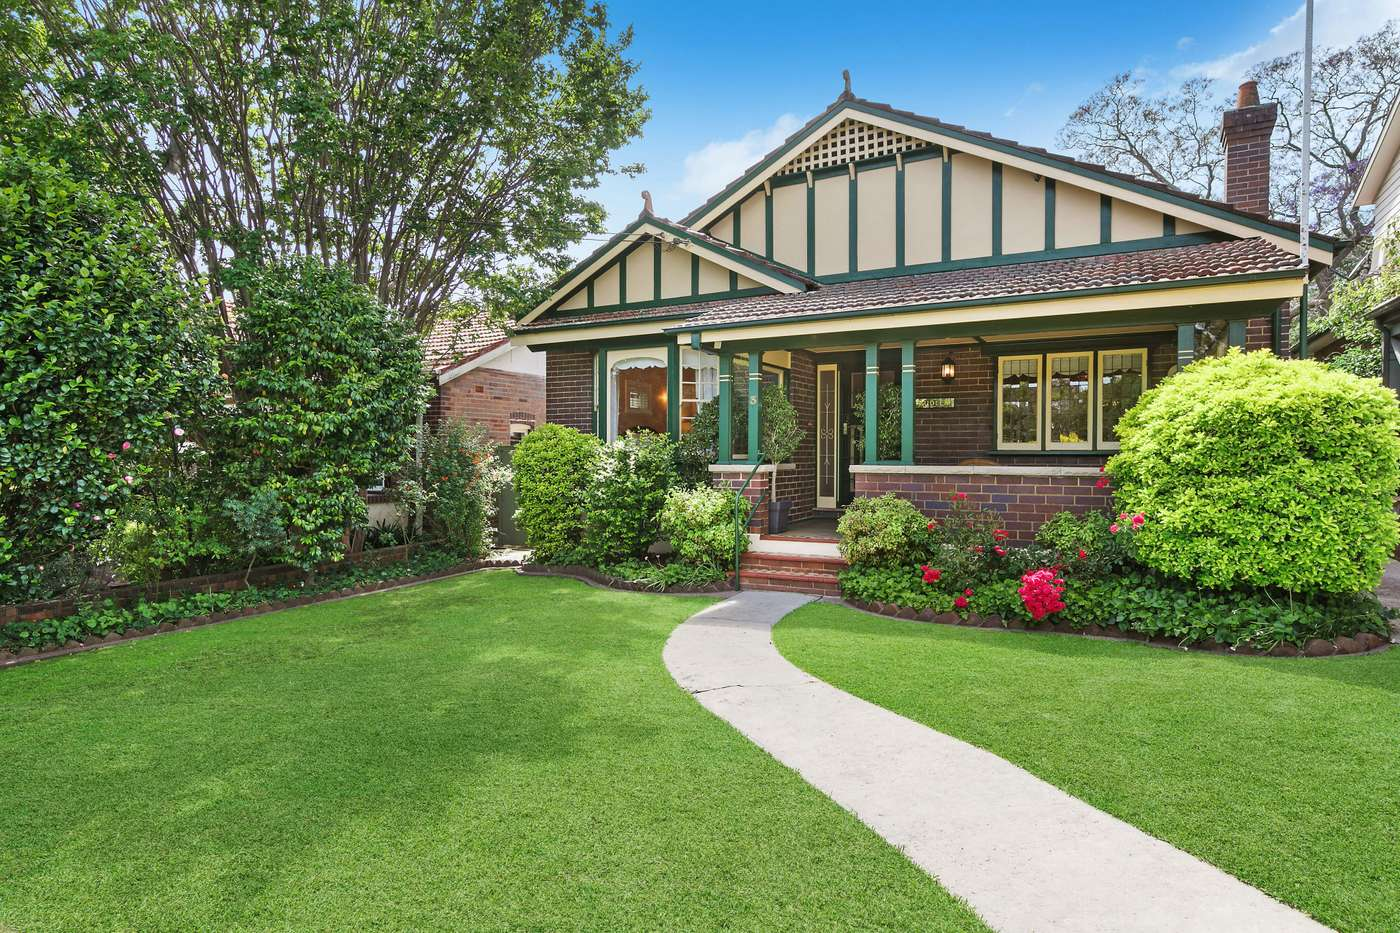 Main view of Homely house listing, 3 Illoura Avenue, Wahroonga, NSW 2076